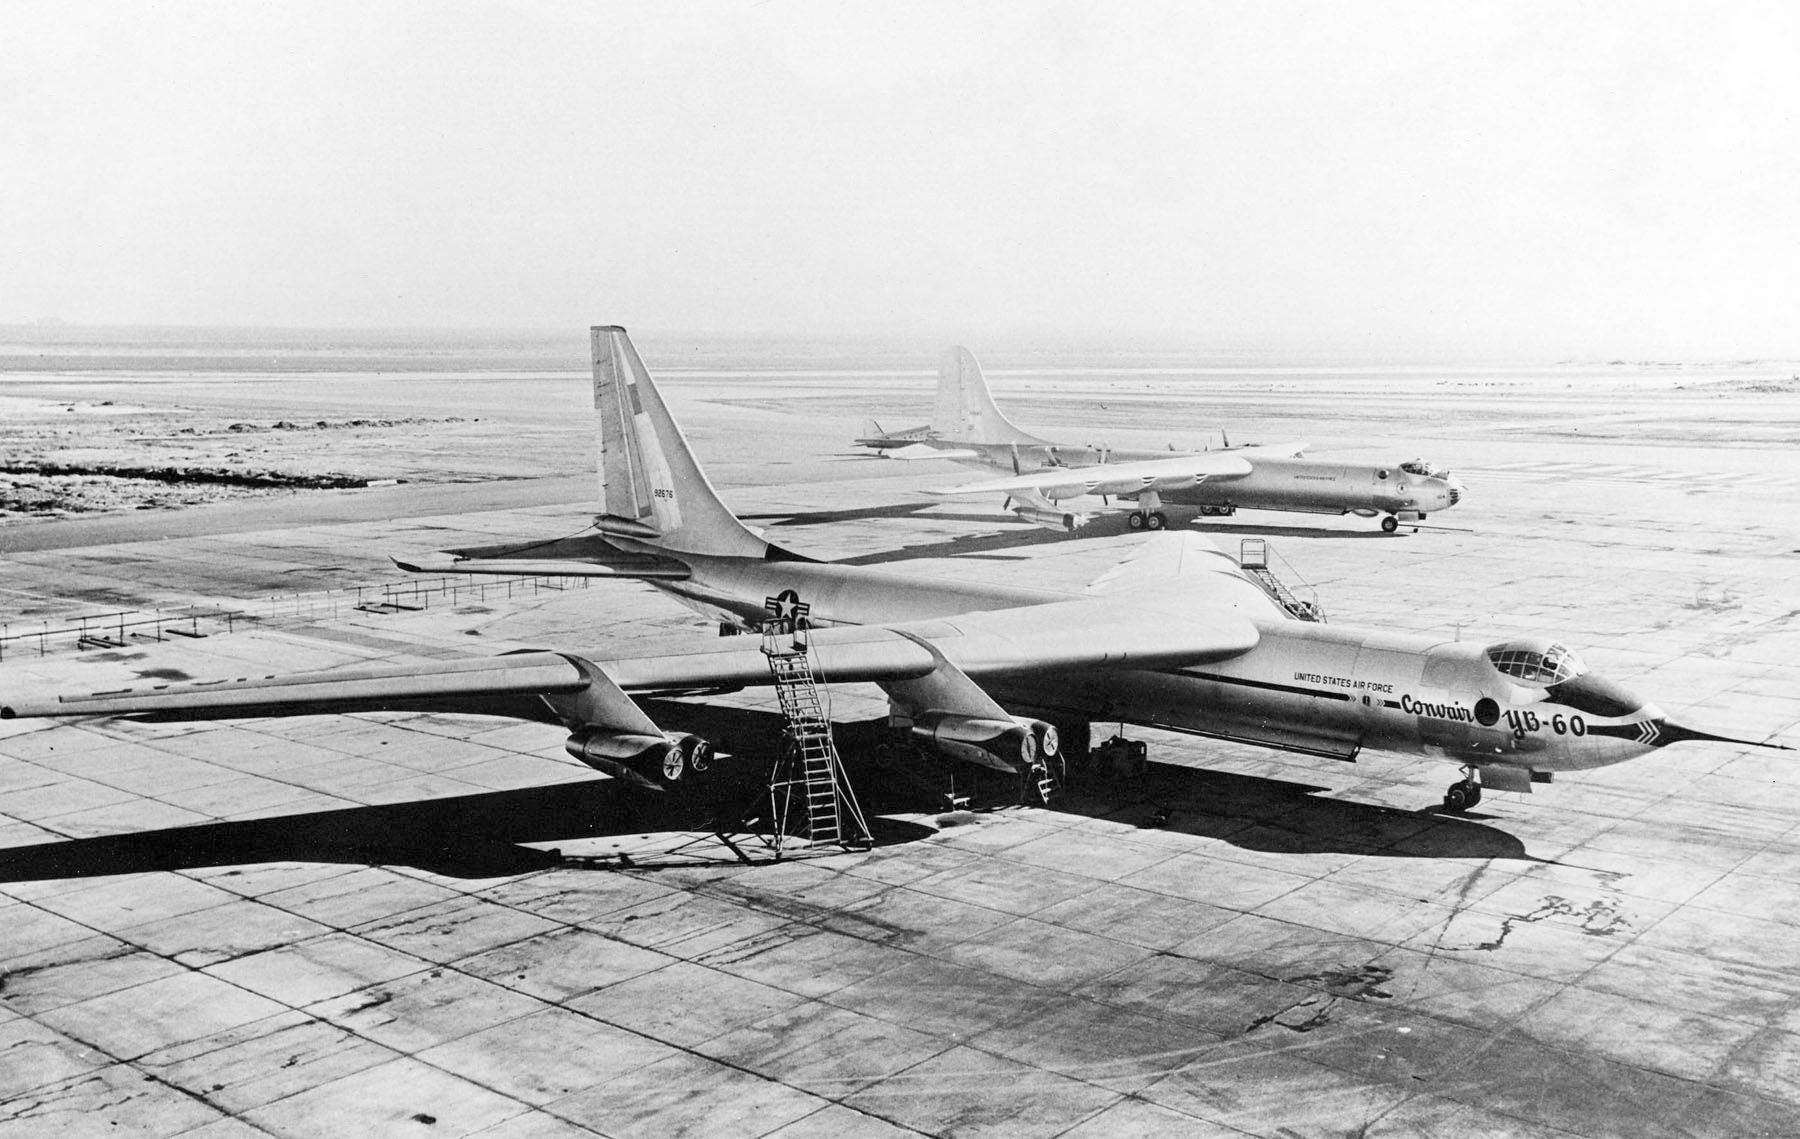 YB-60 prototype, Convair B-36F-5 is in the background